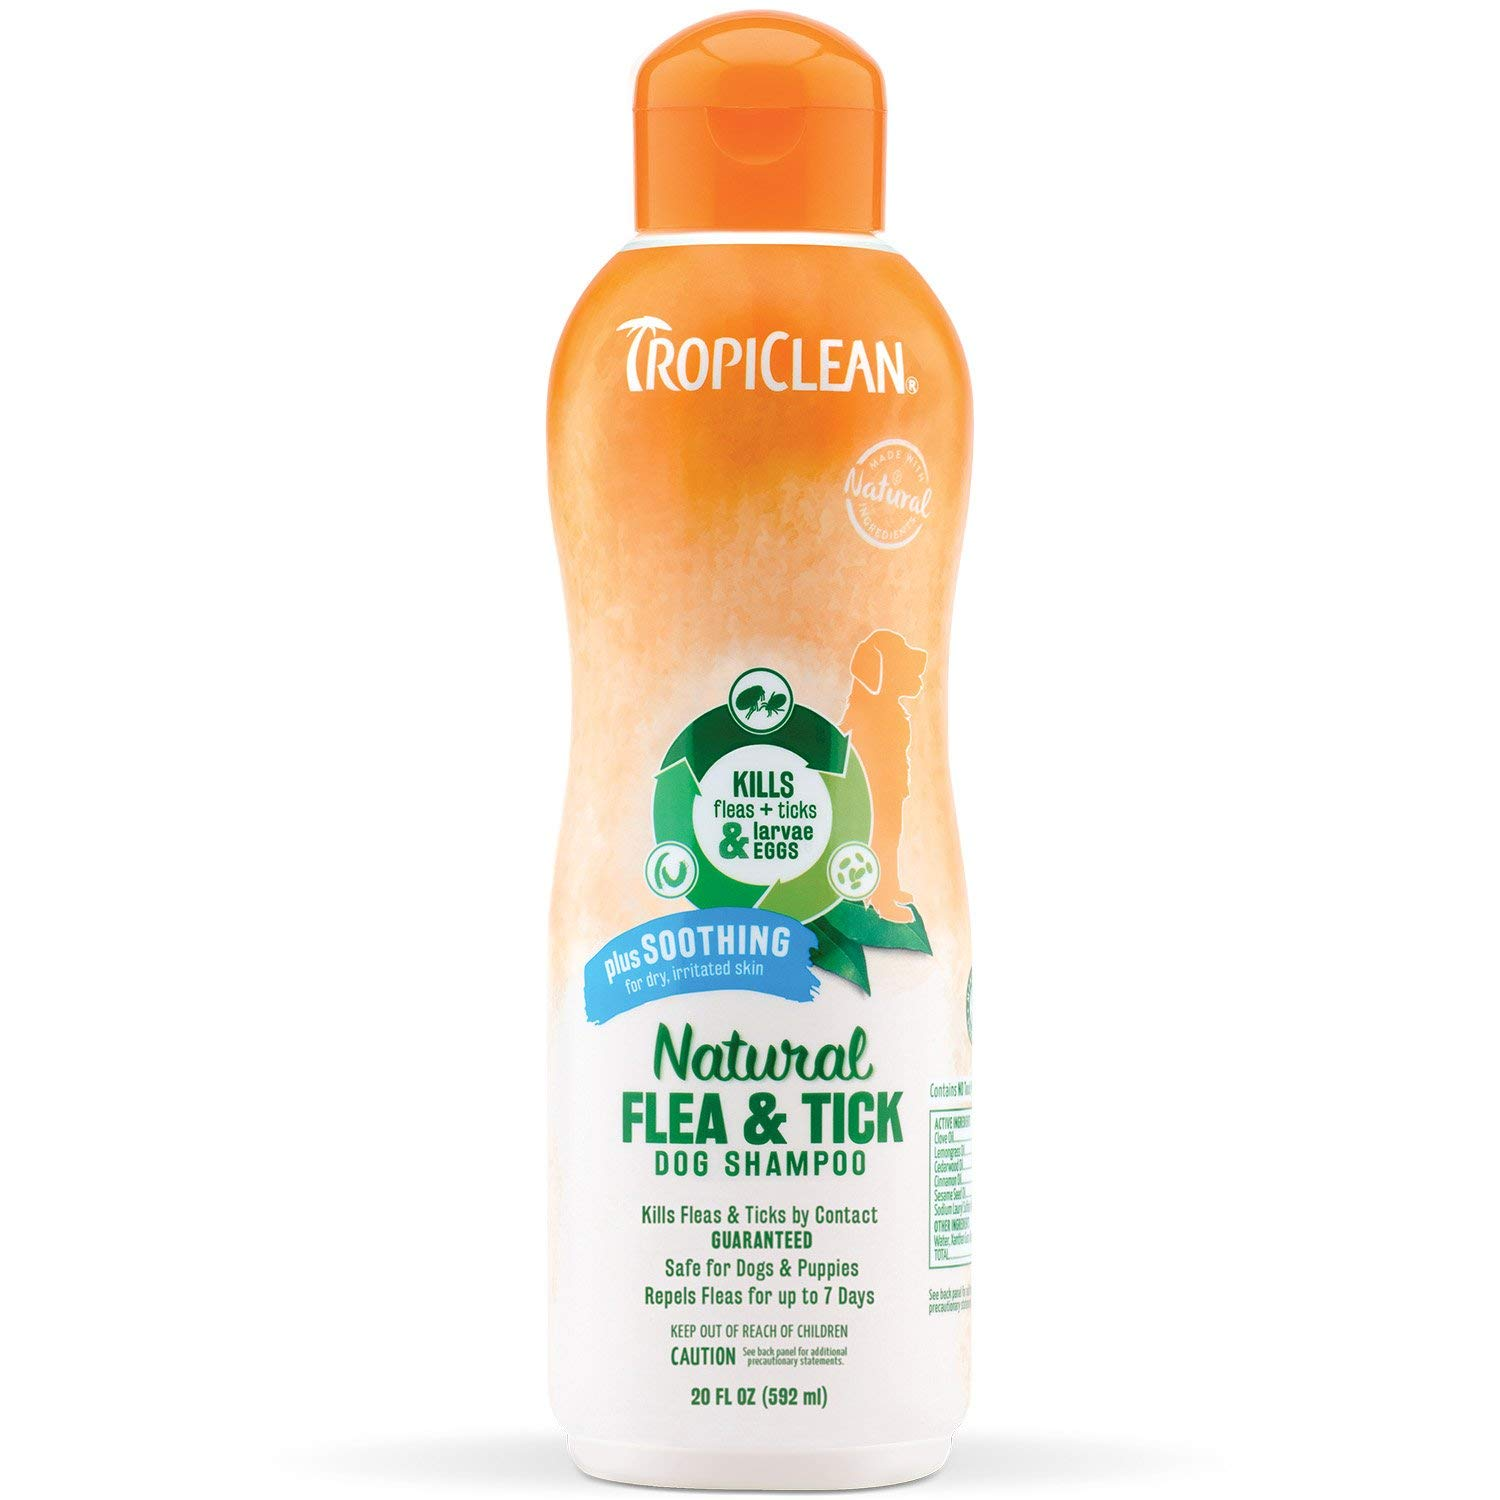 Tropiclean Shampoo - I have used a lot of different shampoos and this is my favorite! Even if fleas and ticks aren't an issue I love this gentle formula that really cleans and leaves an amazing, long lasting scent.Infused with Coca Butter to provide a SOOTHING relief from dry, itchy skin due to flea and tick bitesOur Natural Flea and Tick Plus Soothing shampoo contains NO PYRETHRIN OR PERMETHRIN, with 5 EPA APPROVED Natural Essential Oils - Clove Oil, Lemongrass Oil, Cedarwood Oil, Cinnamon Oil and Sesame Seed Oil - for a pleasant citrus aromaThe combination of NATURAL ESSENTIAL OILS helps to effectively REPEL fleas, ticks, larvae and eggs for up to 7 days when applied to dogs and puppies 12 weeks or olderRecommended for use on DOGS ONLYSAFE enough for routine bathsProudly Made in the USA